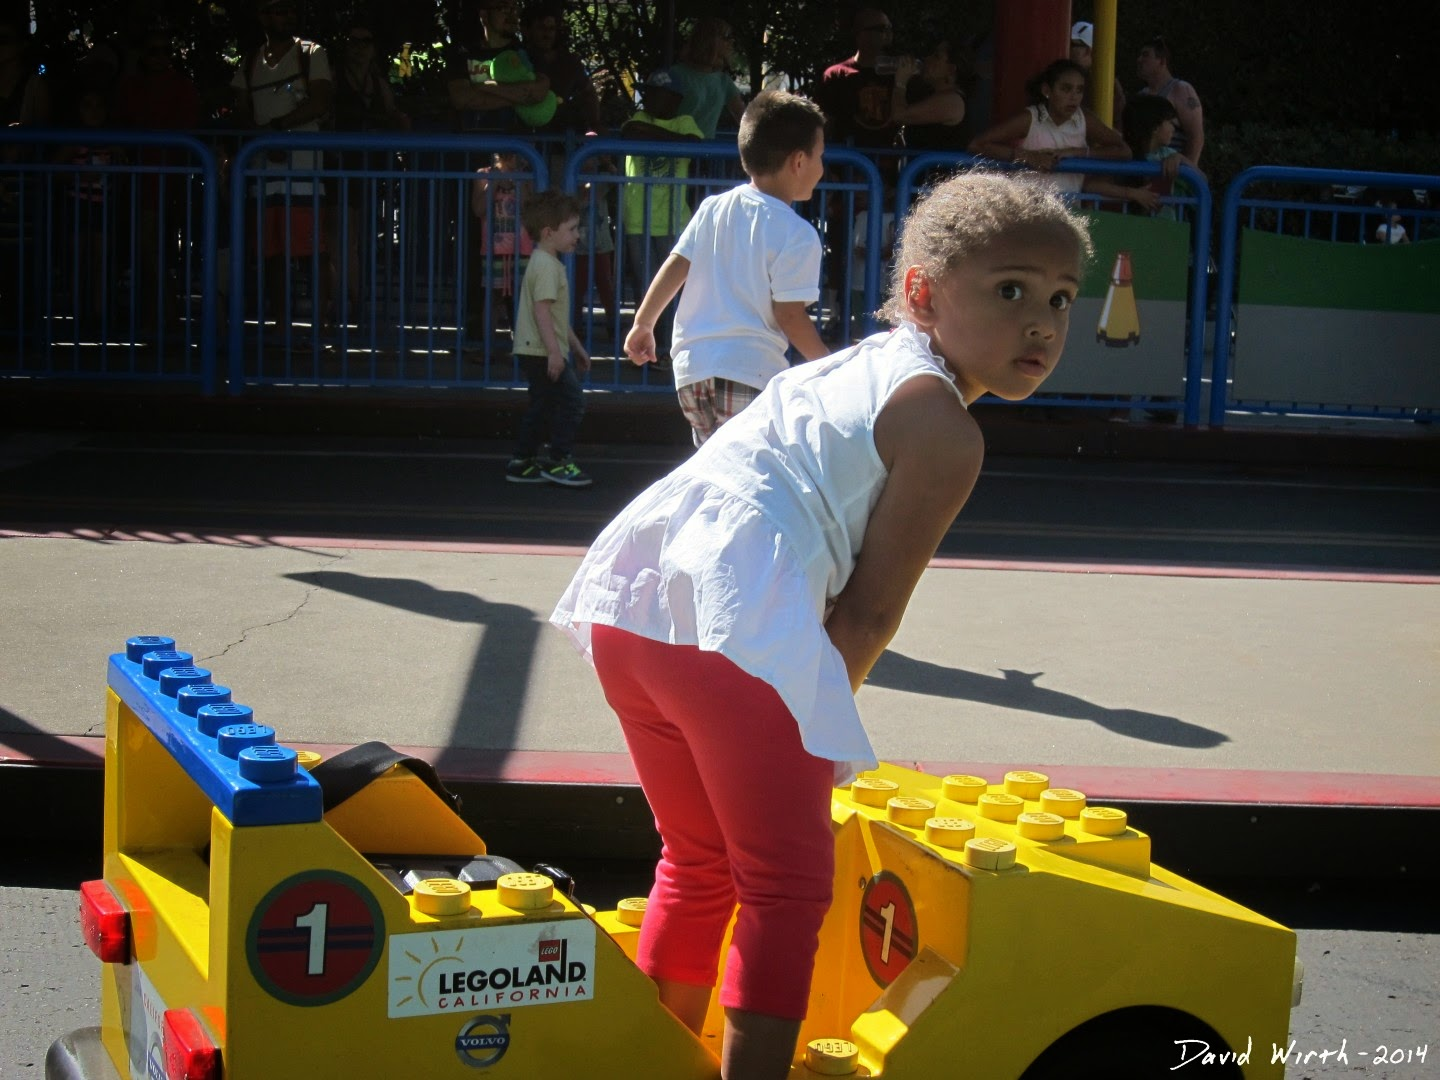 best rides in legoland, california, san diego